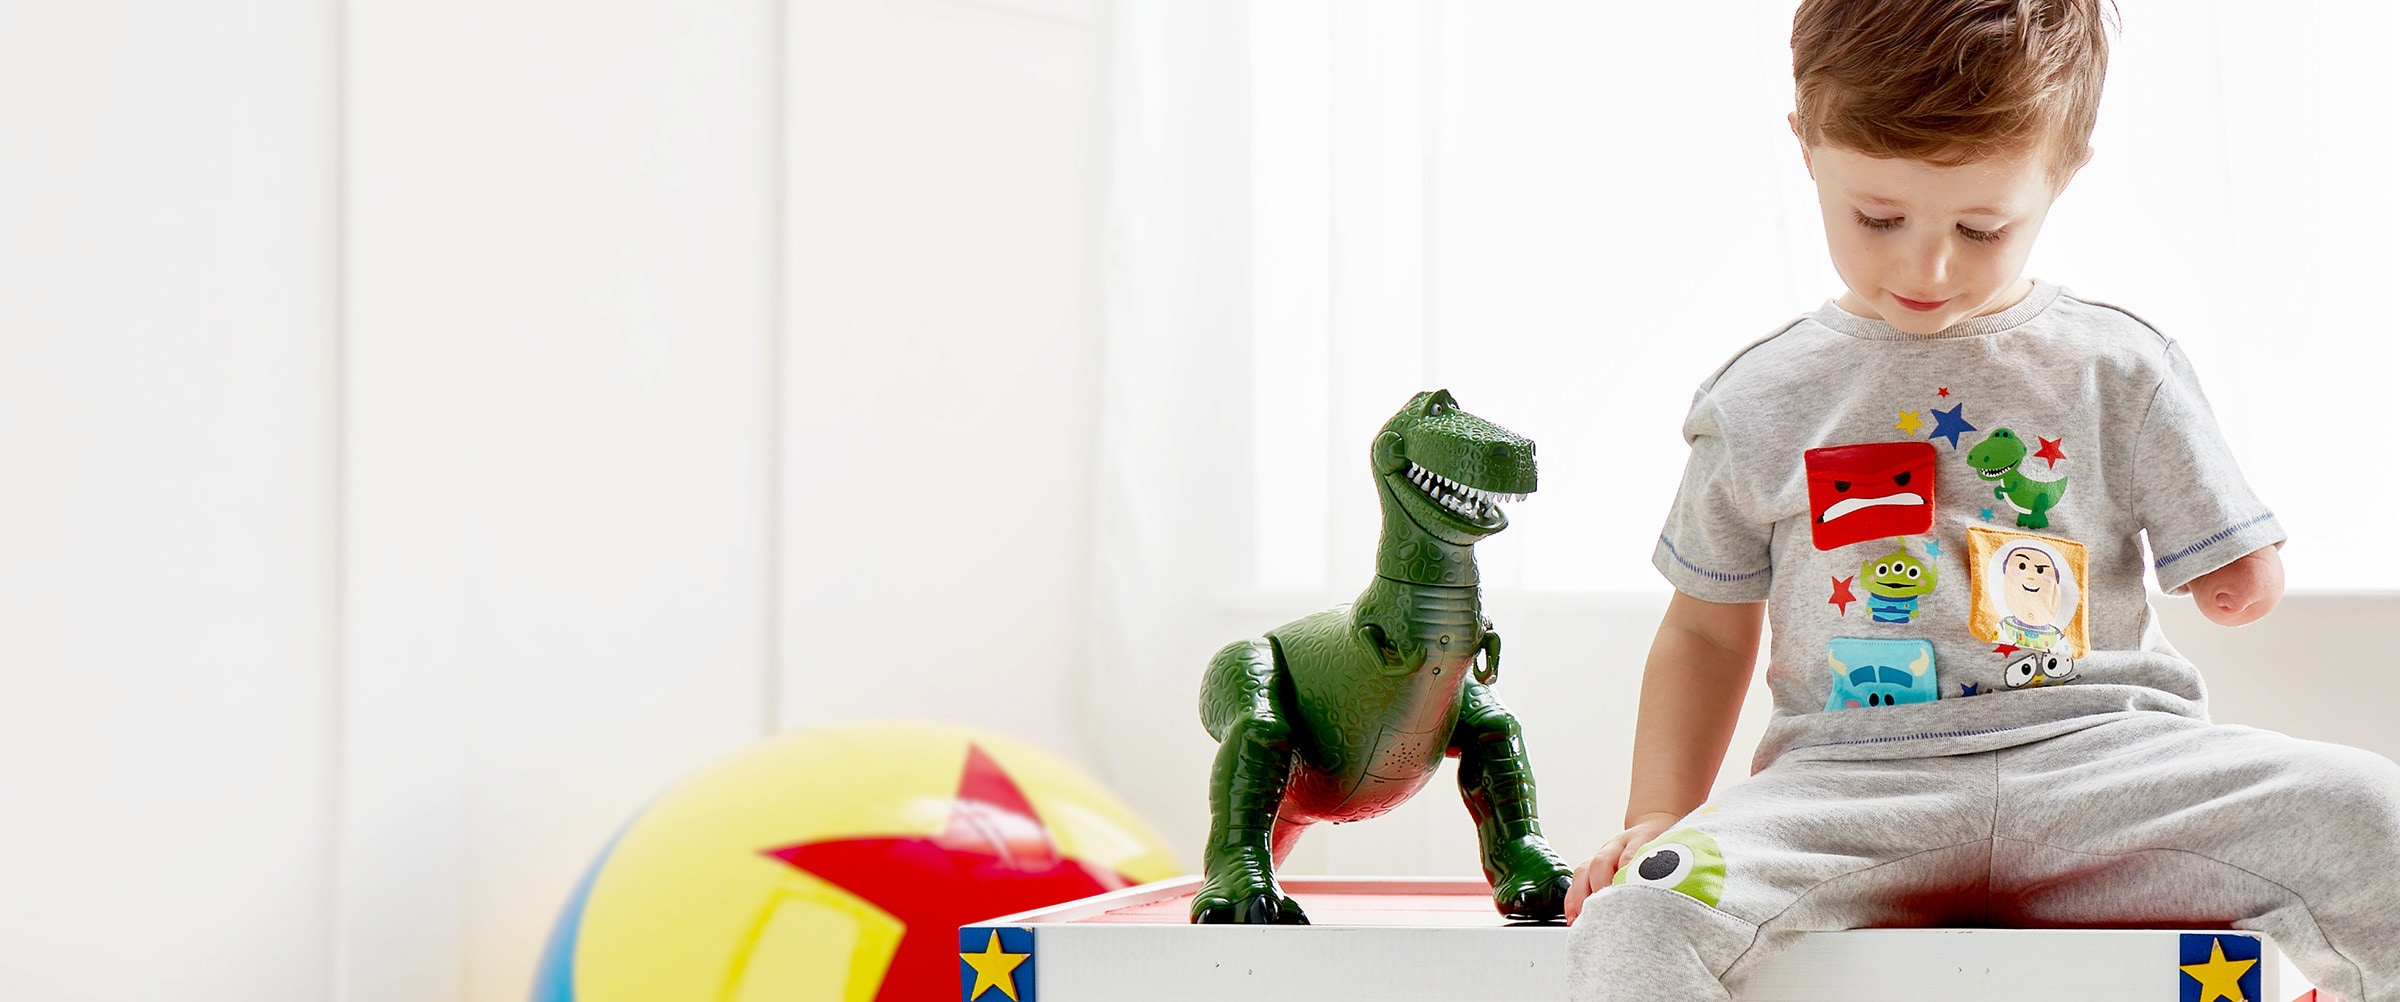 shopDisney UK |  Pixar toys, clothing and accessories are available now